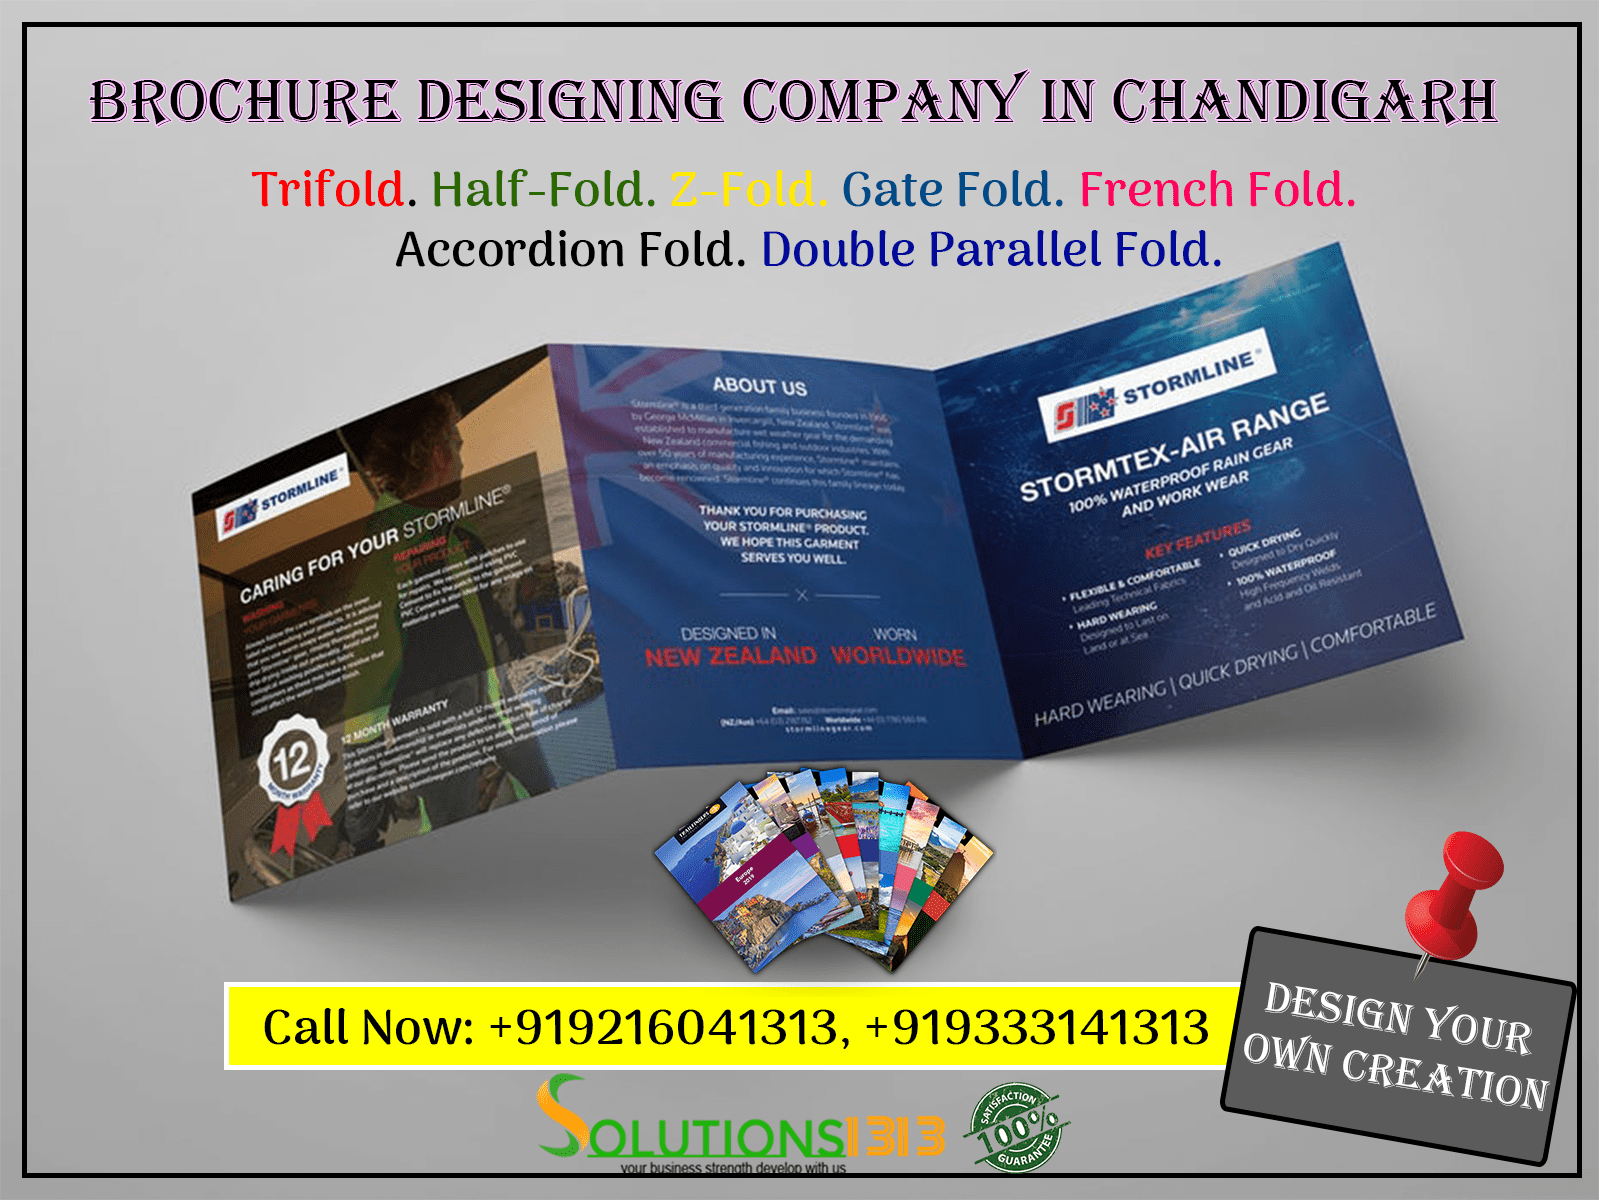 Digital Marketing Course in Chandigarh | Contact Us Now: +